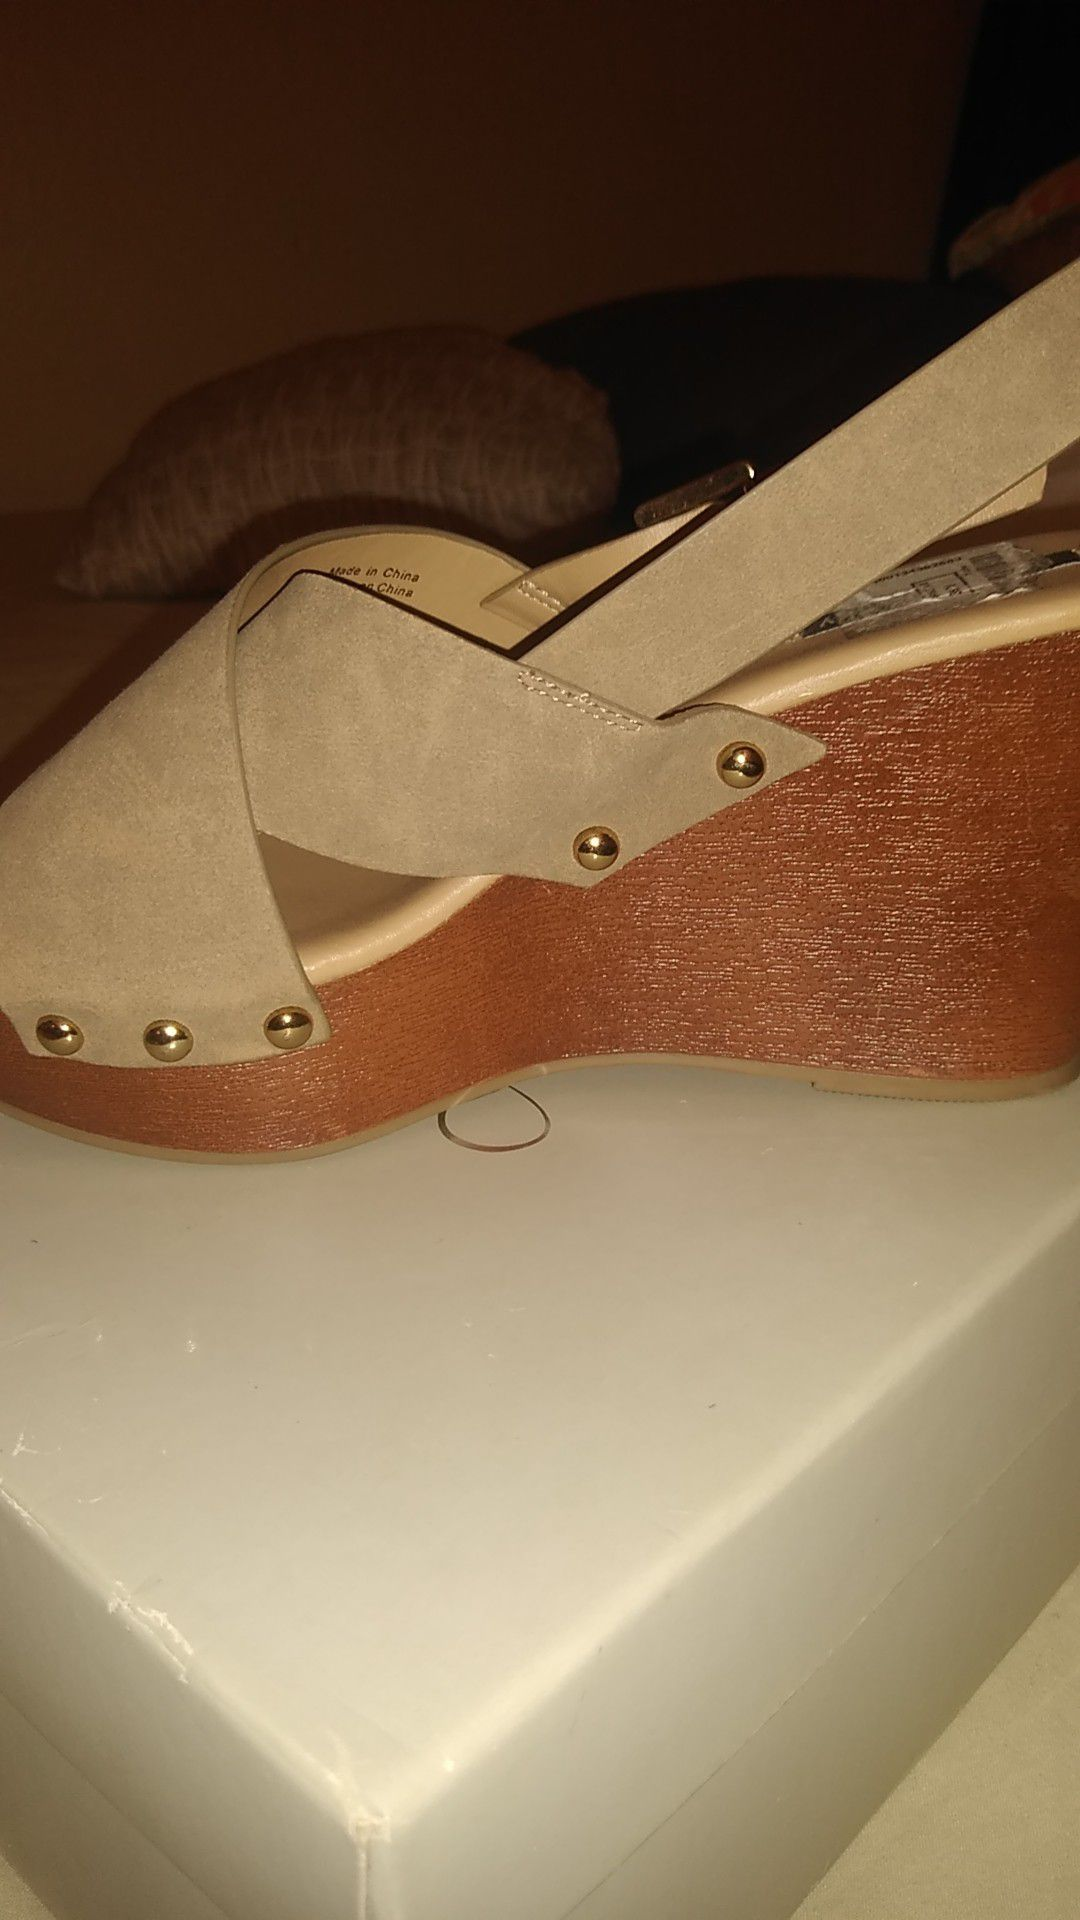 Parker and sky wedges shoes